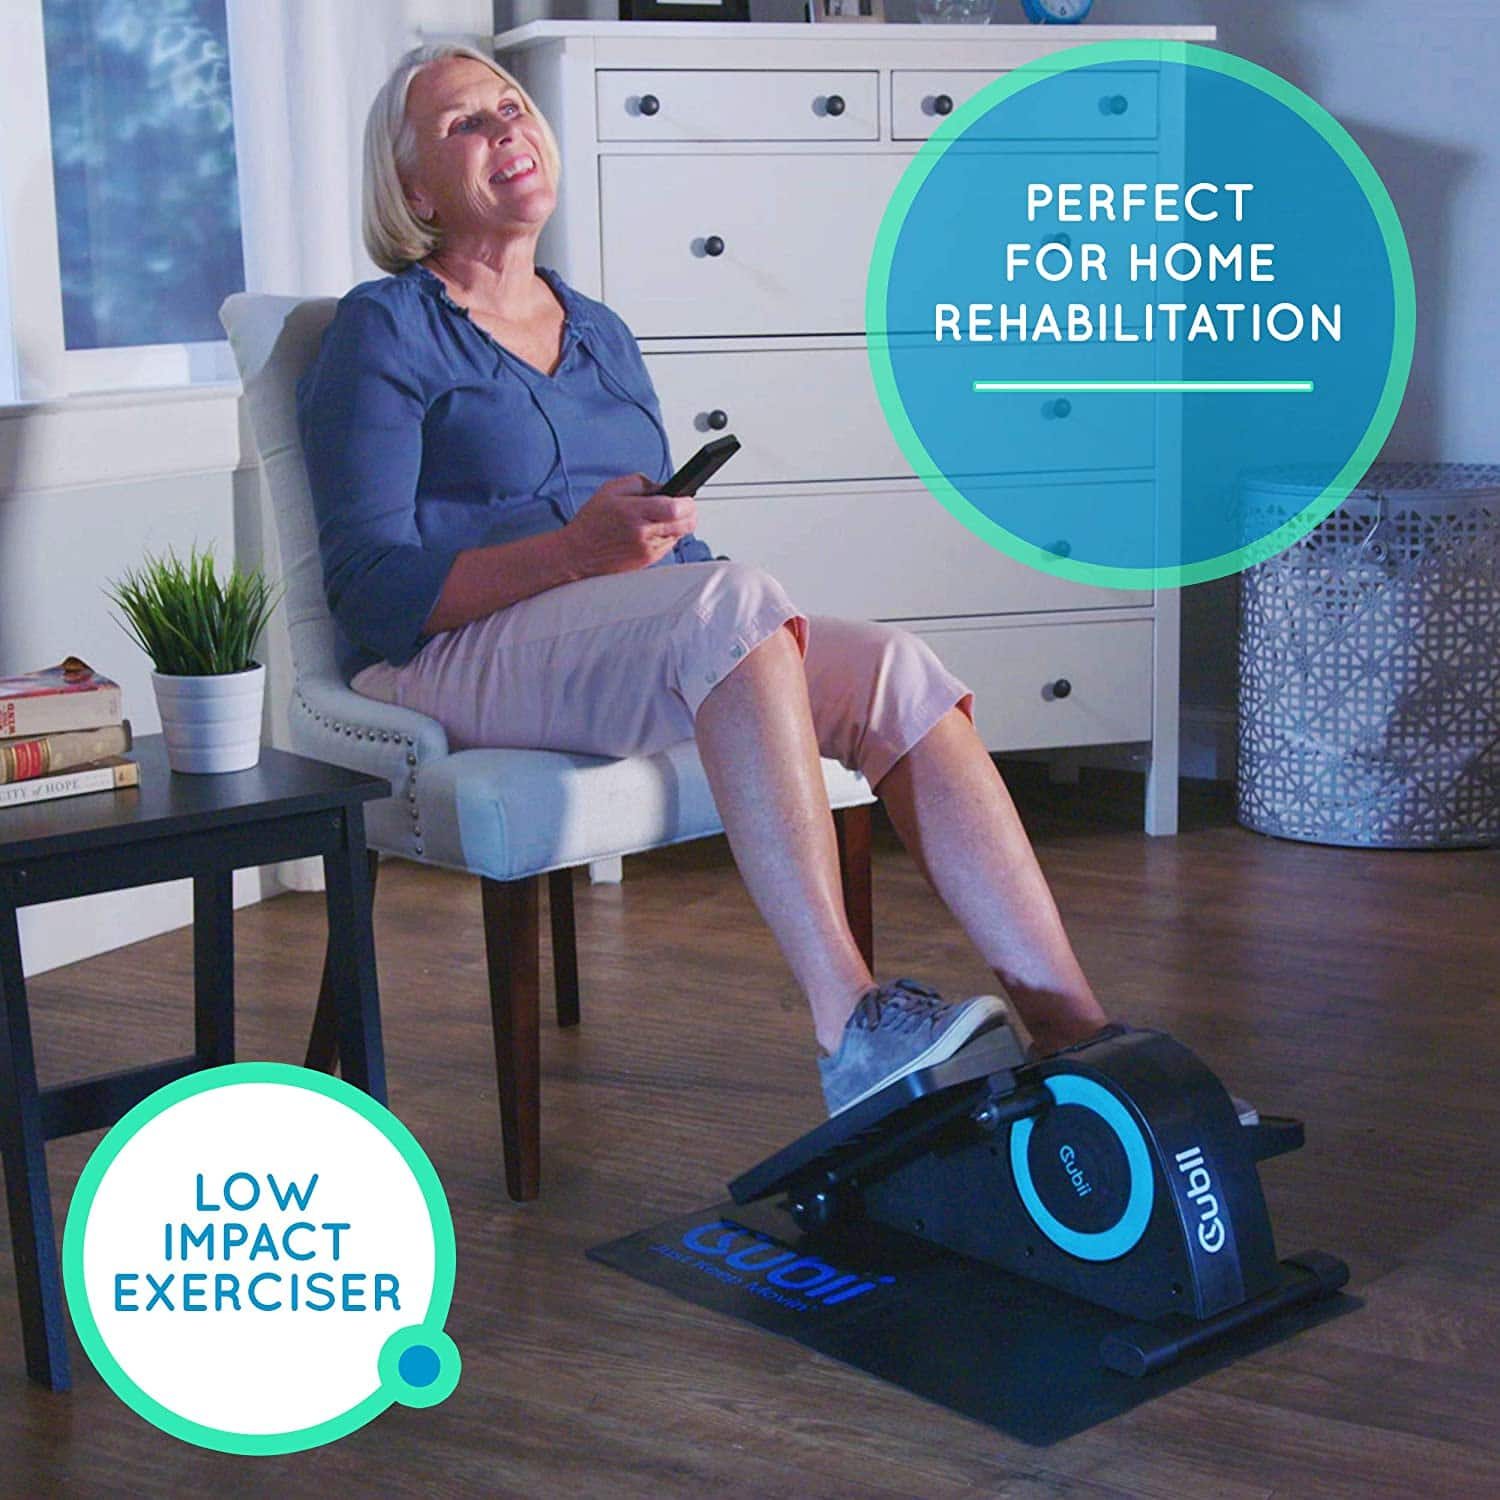 What are the Best Pedal Exerciser for Seniors